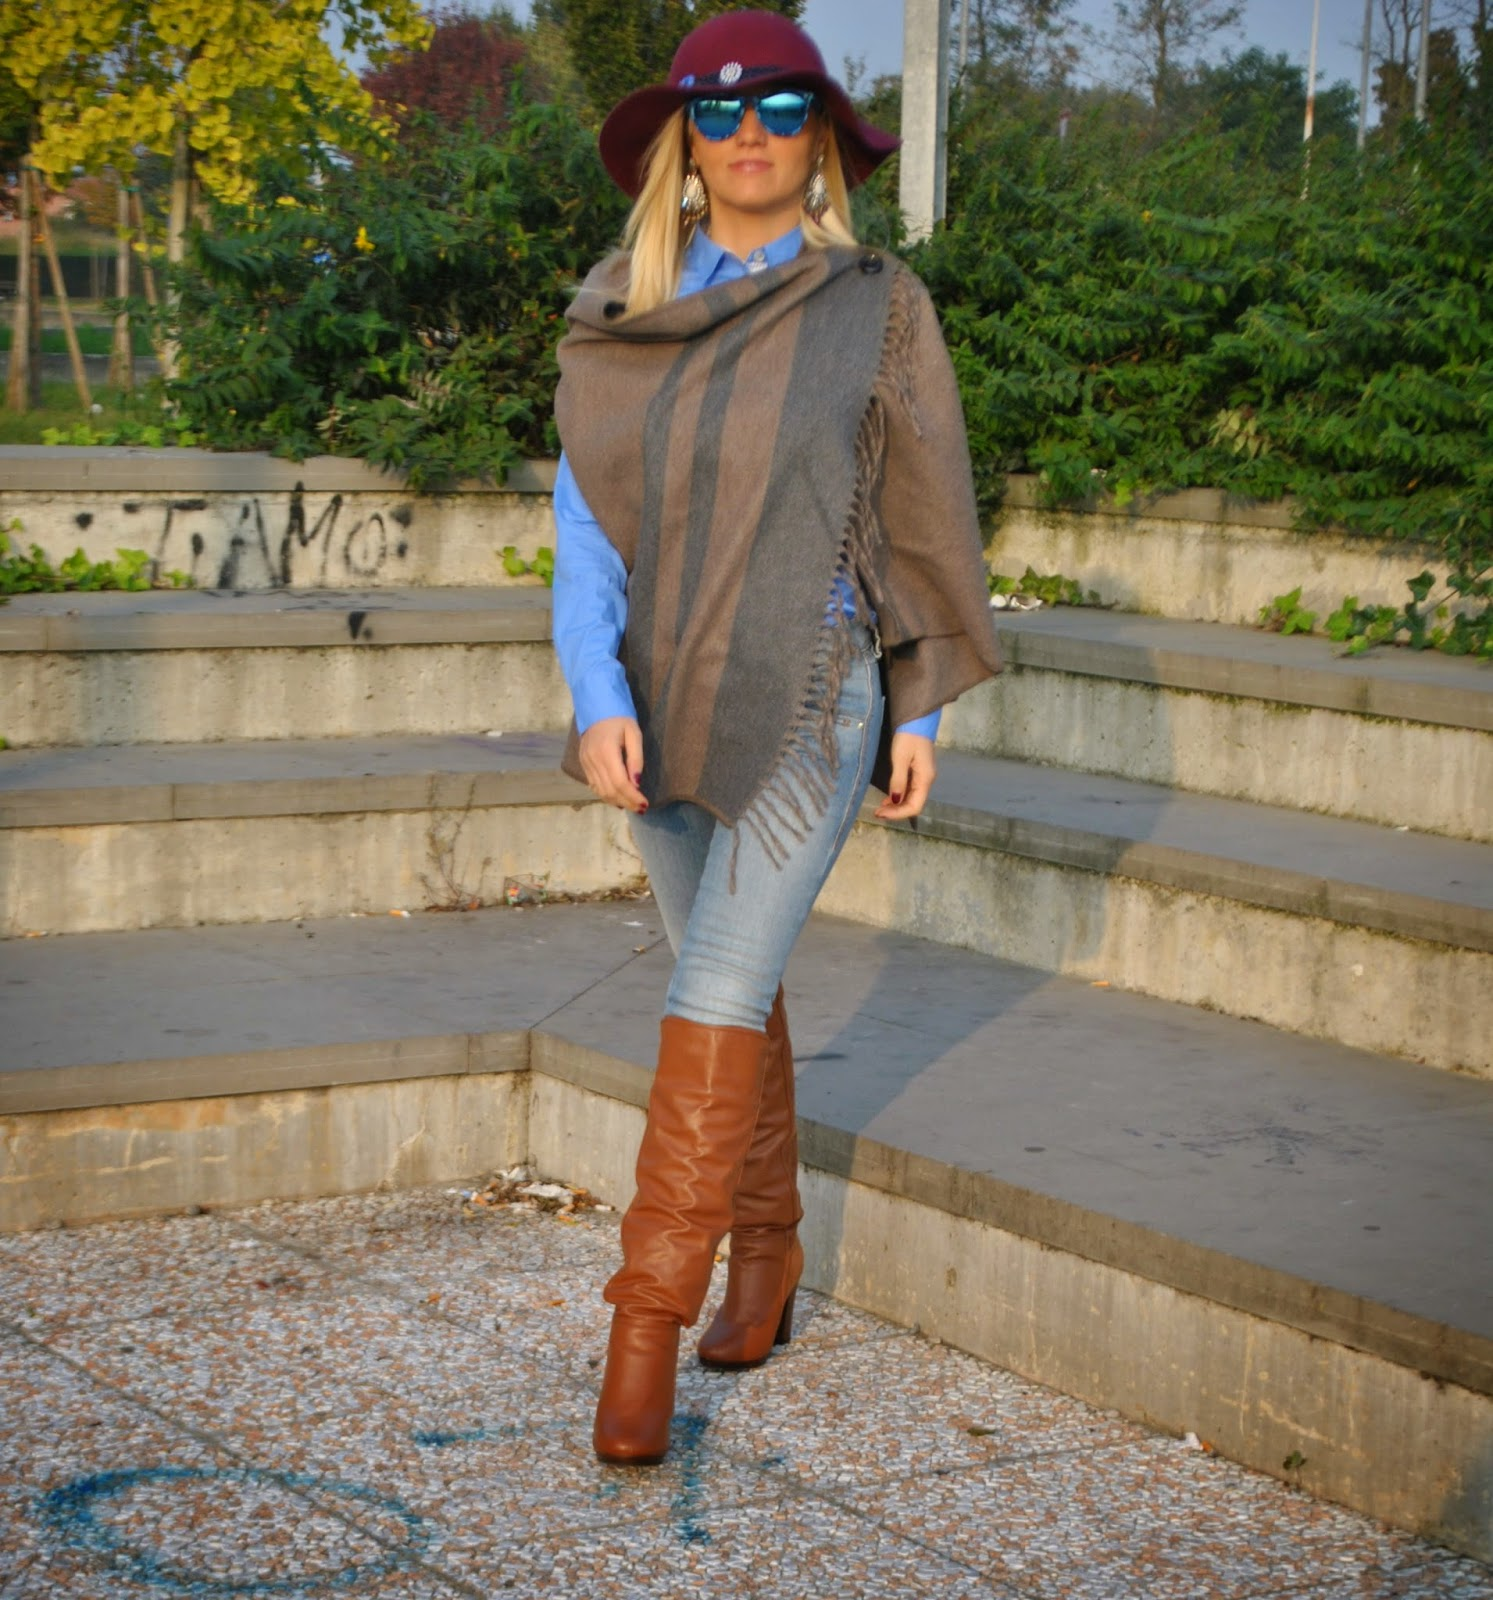 autumnal outfit  how to wear cape outfit cape cape street style outfit hat fashion bloggers italy italian girl  outfit mantella outfit casual abbinamenti mantella outfit jeans e mantella outfit stivali cuissardes outfit camicia azzurra outfit jeans fornarina come abbinare la mantella outfit cappello zara jeans e stivali abbinamenti stivali e jeans orecchini majique majique london earringss zara hat fornarina botton up mantella liu jo how to wear cape outfit cape outfit autunnali outfit casual autunnali outfit ottobre 2014 fashion blogger italiane fashion blogger bionde mariafelicia magno fashion blogger outfit colorblock by felym mariafelicia magno fashion blogger di color block by felym come abbinare il cappello cappello burgundy majique london earrings